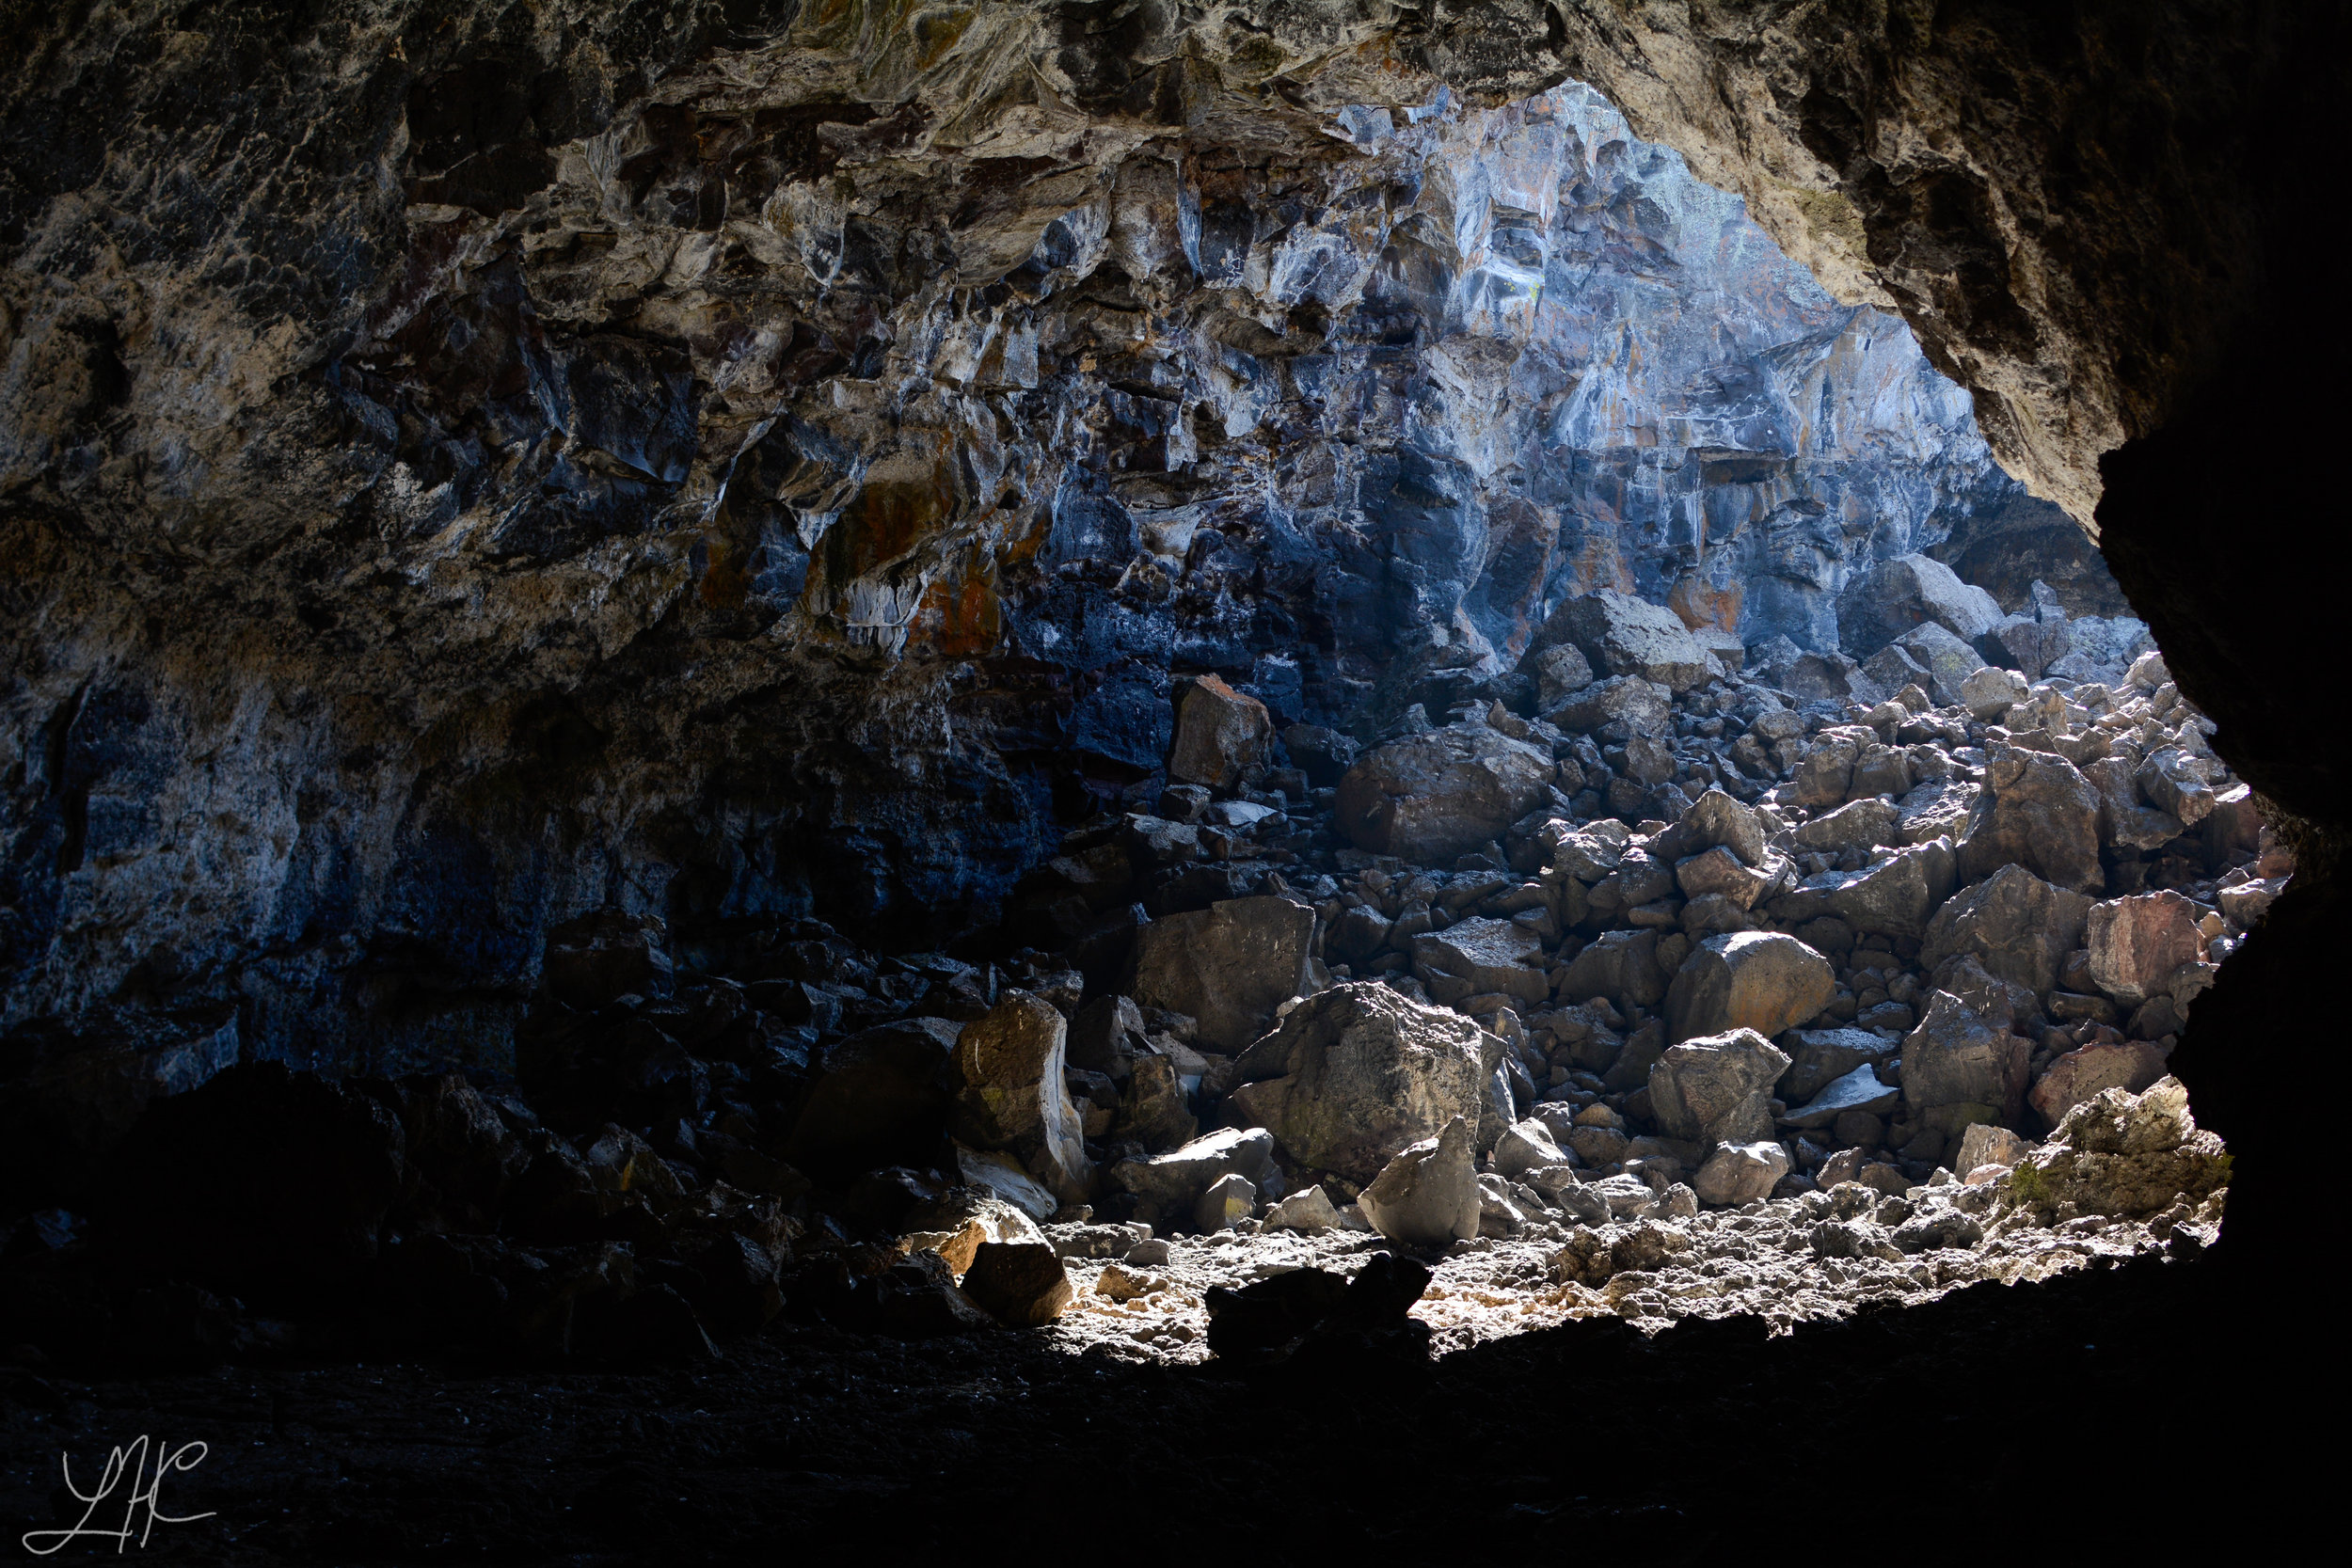 Lava Tunnel Exploring, Craters of the Moon National Monument